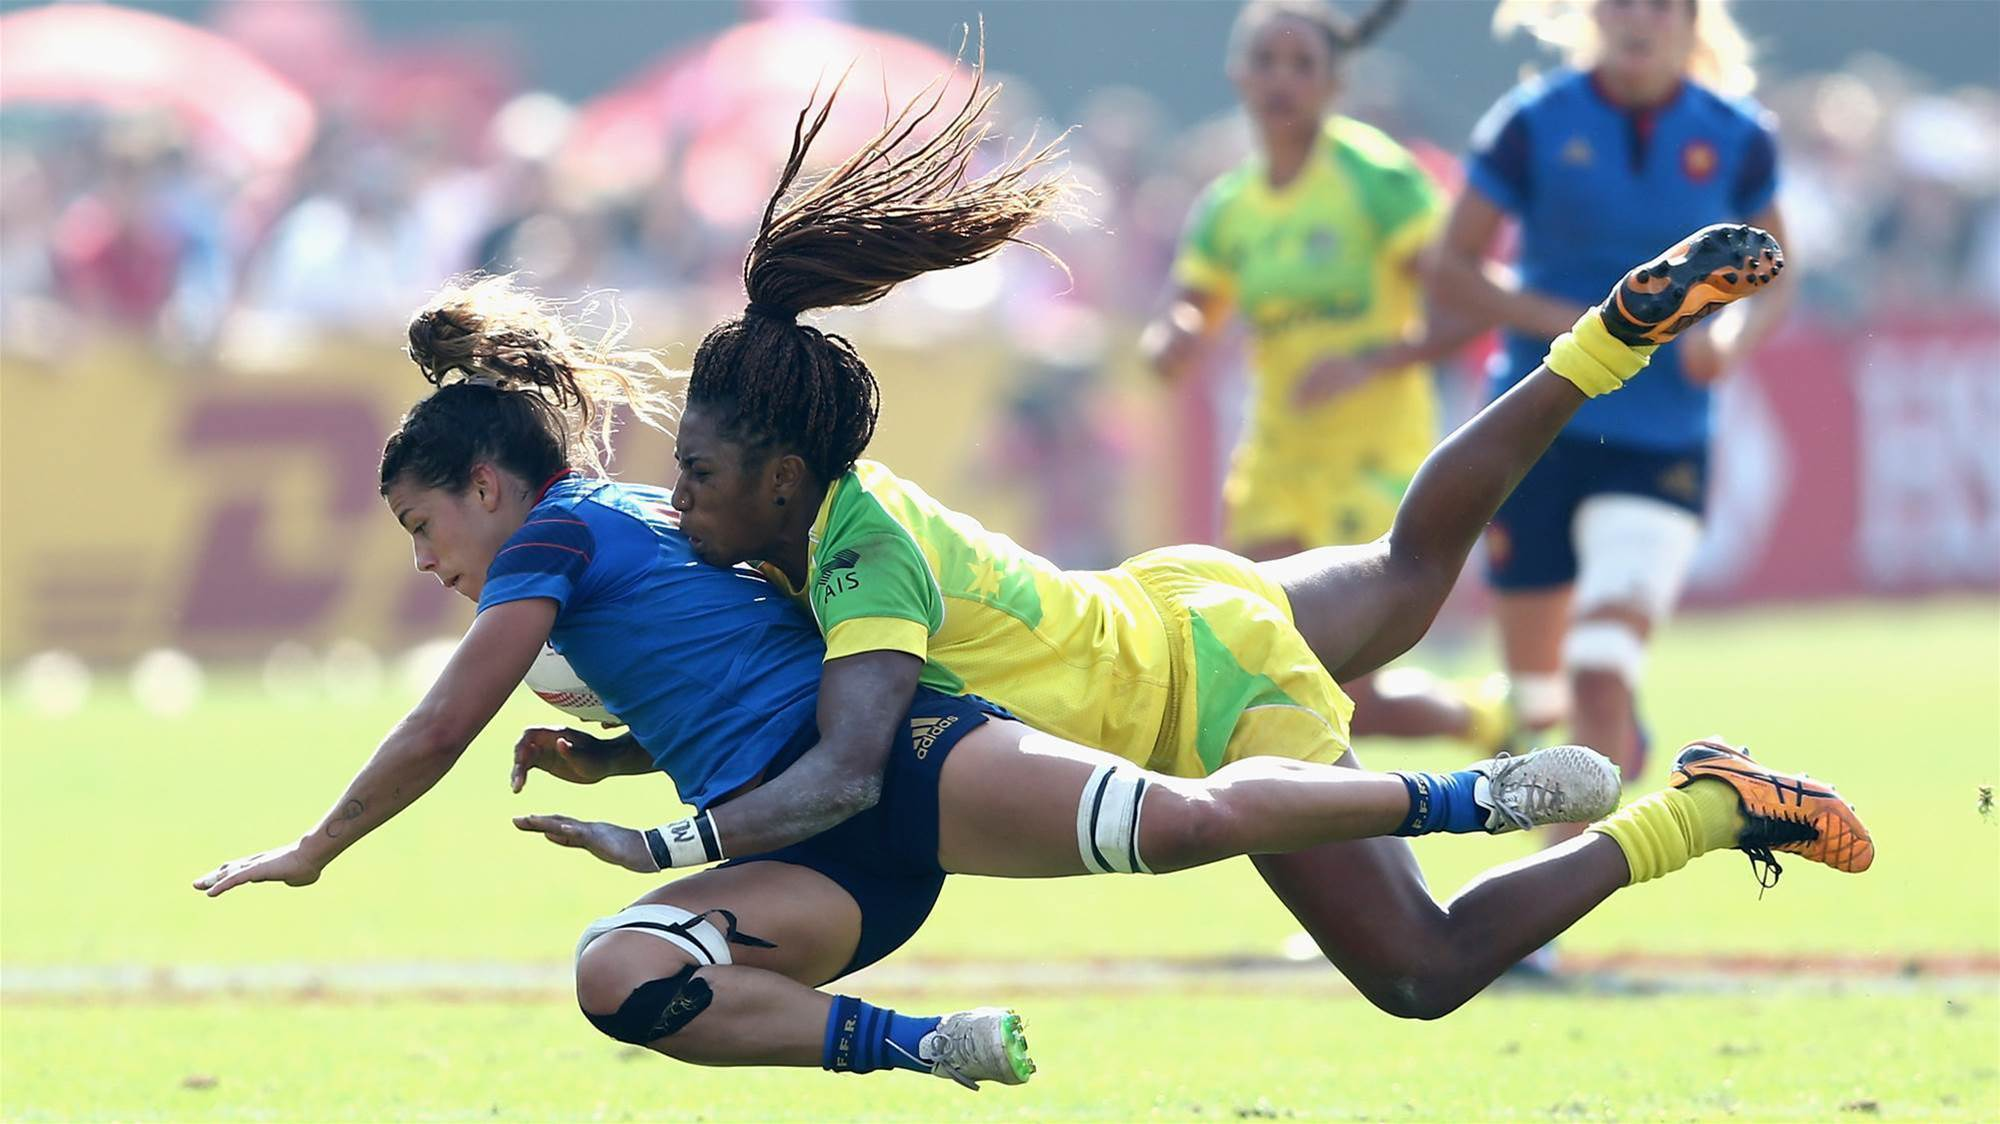 Women's Sydney Sevens Series Pool A preview